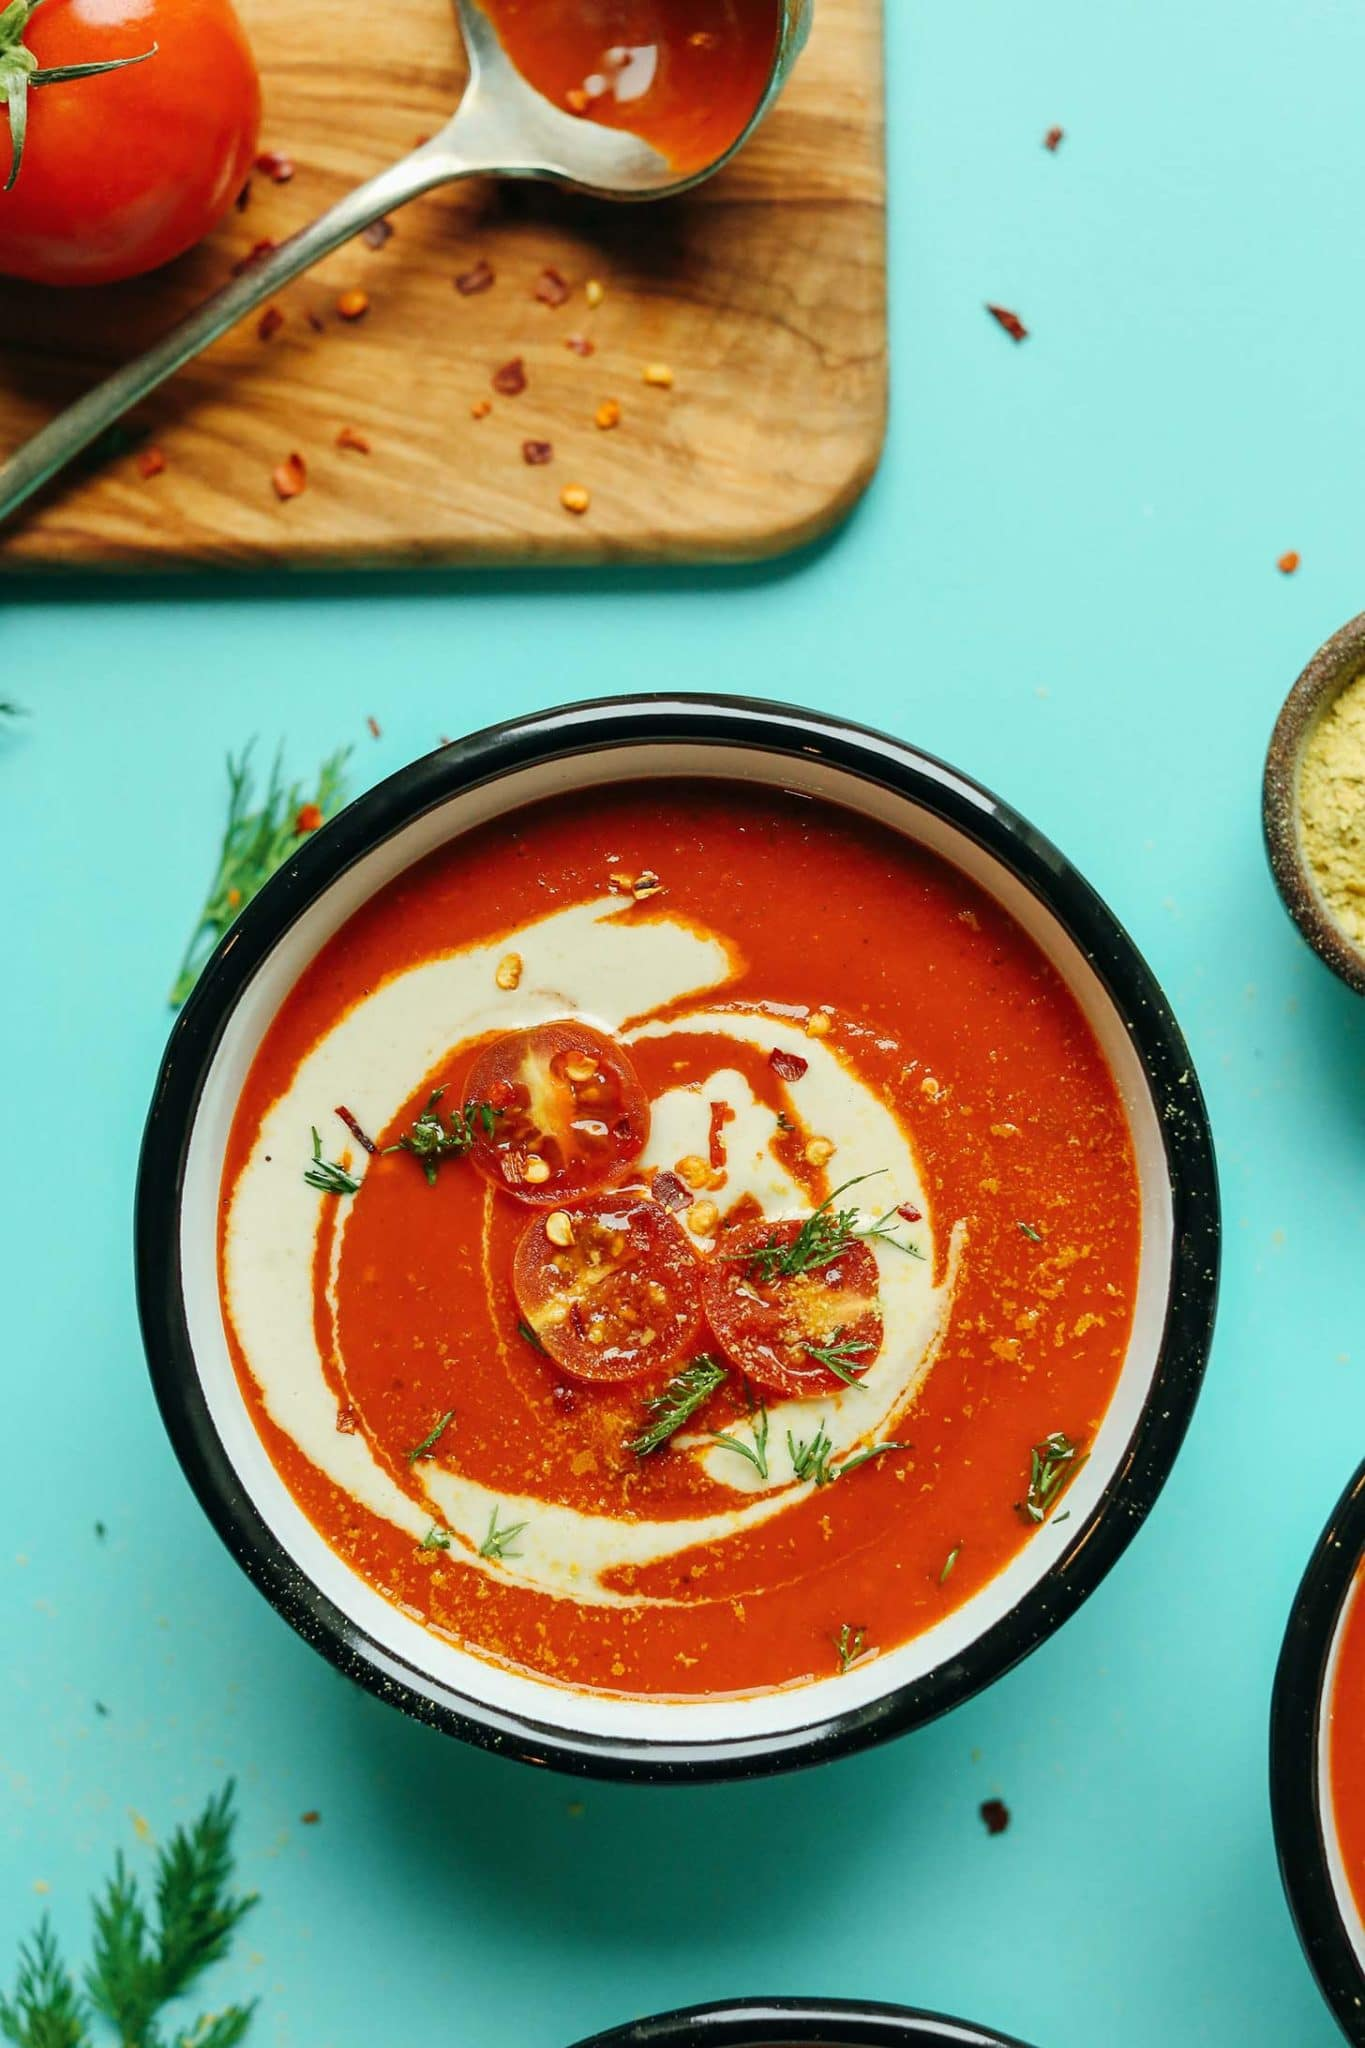 a bowl of creamy roasted red pepper tomato soup topped with tomatoes and greens on a teal background.